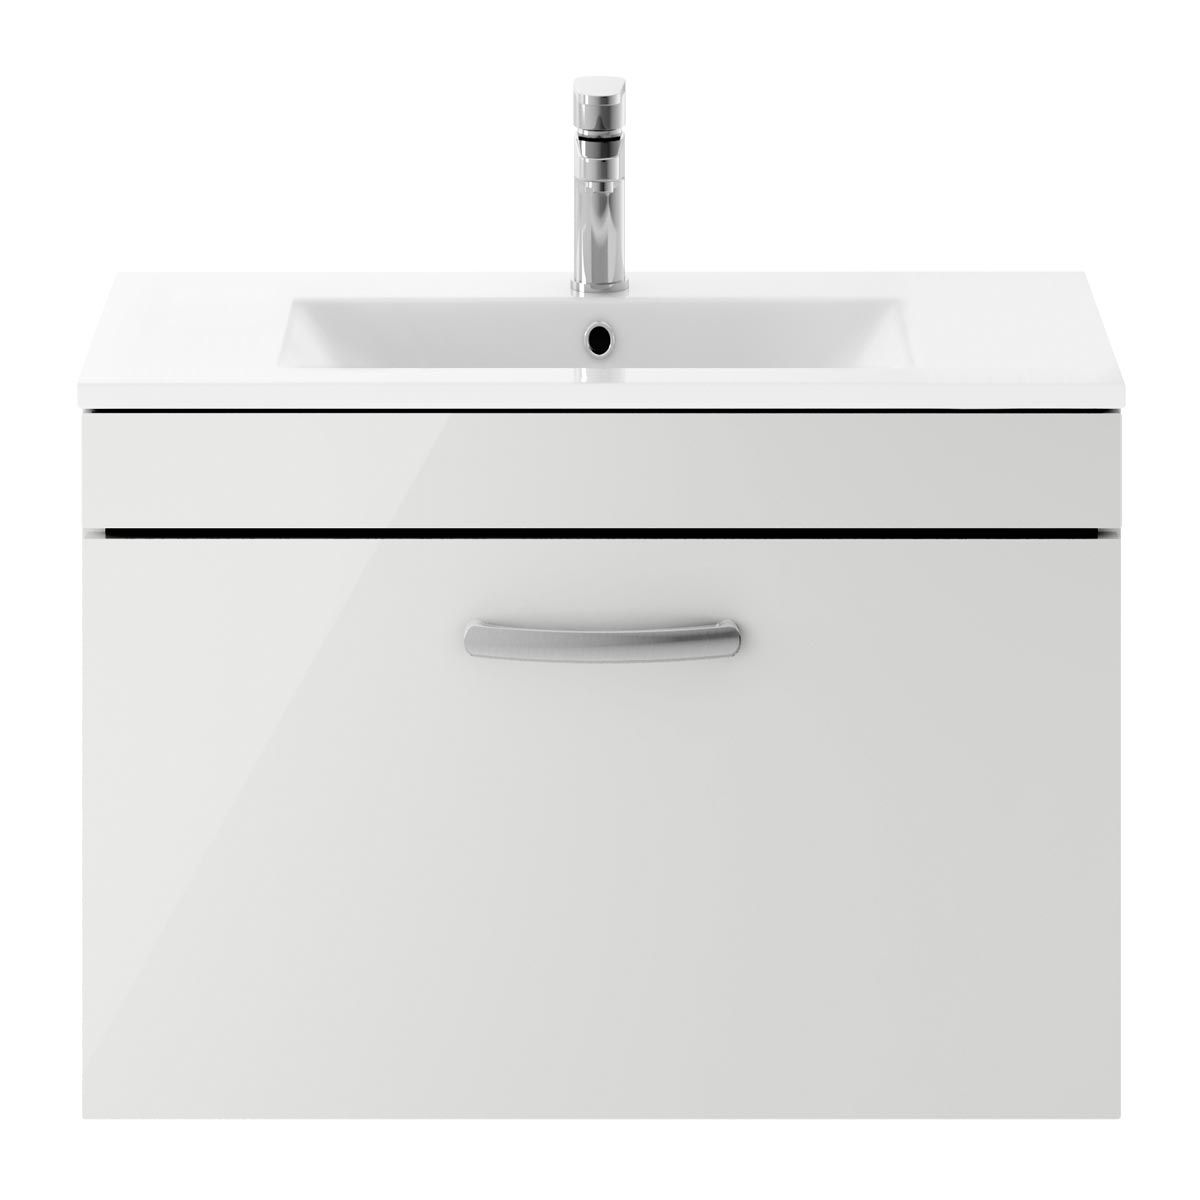 Nuie Athena Gloss Grey Mist 1 Drawer Wall Hung Vanity Unit with 18mm Profile Basin 800mm